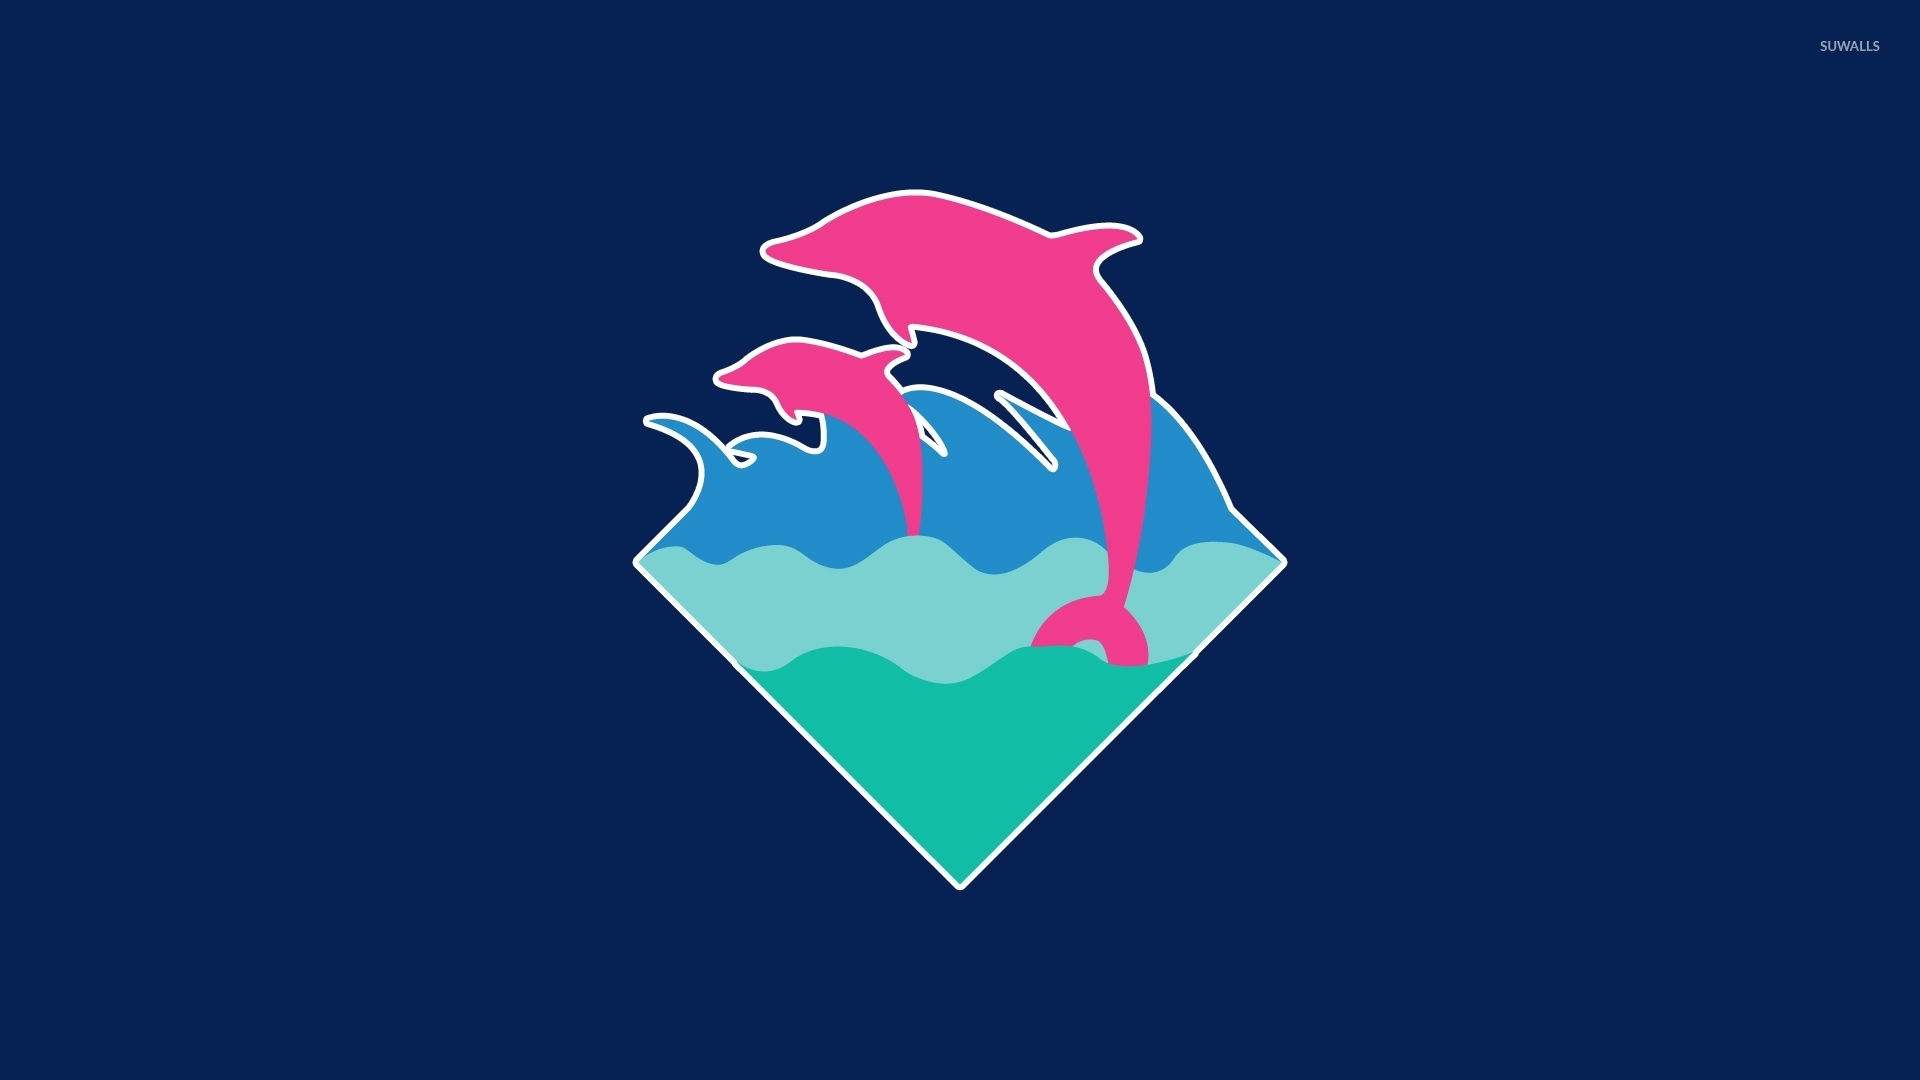 Pink Dolphin Wallpaper Pink dolphins swimming...